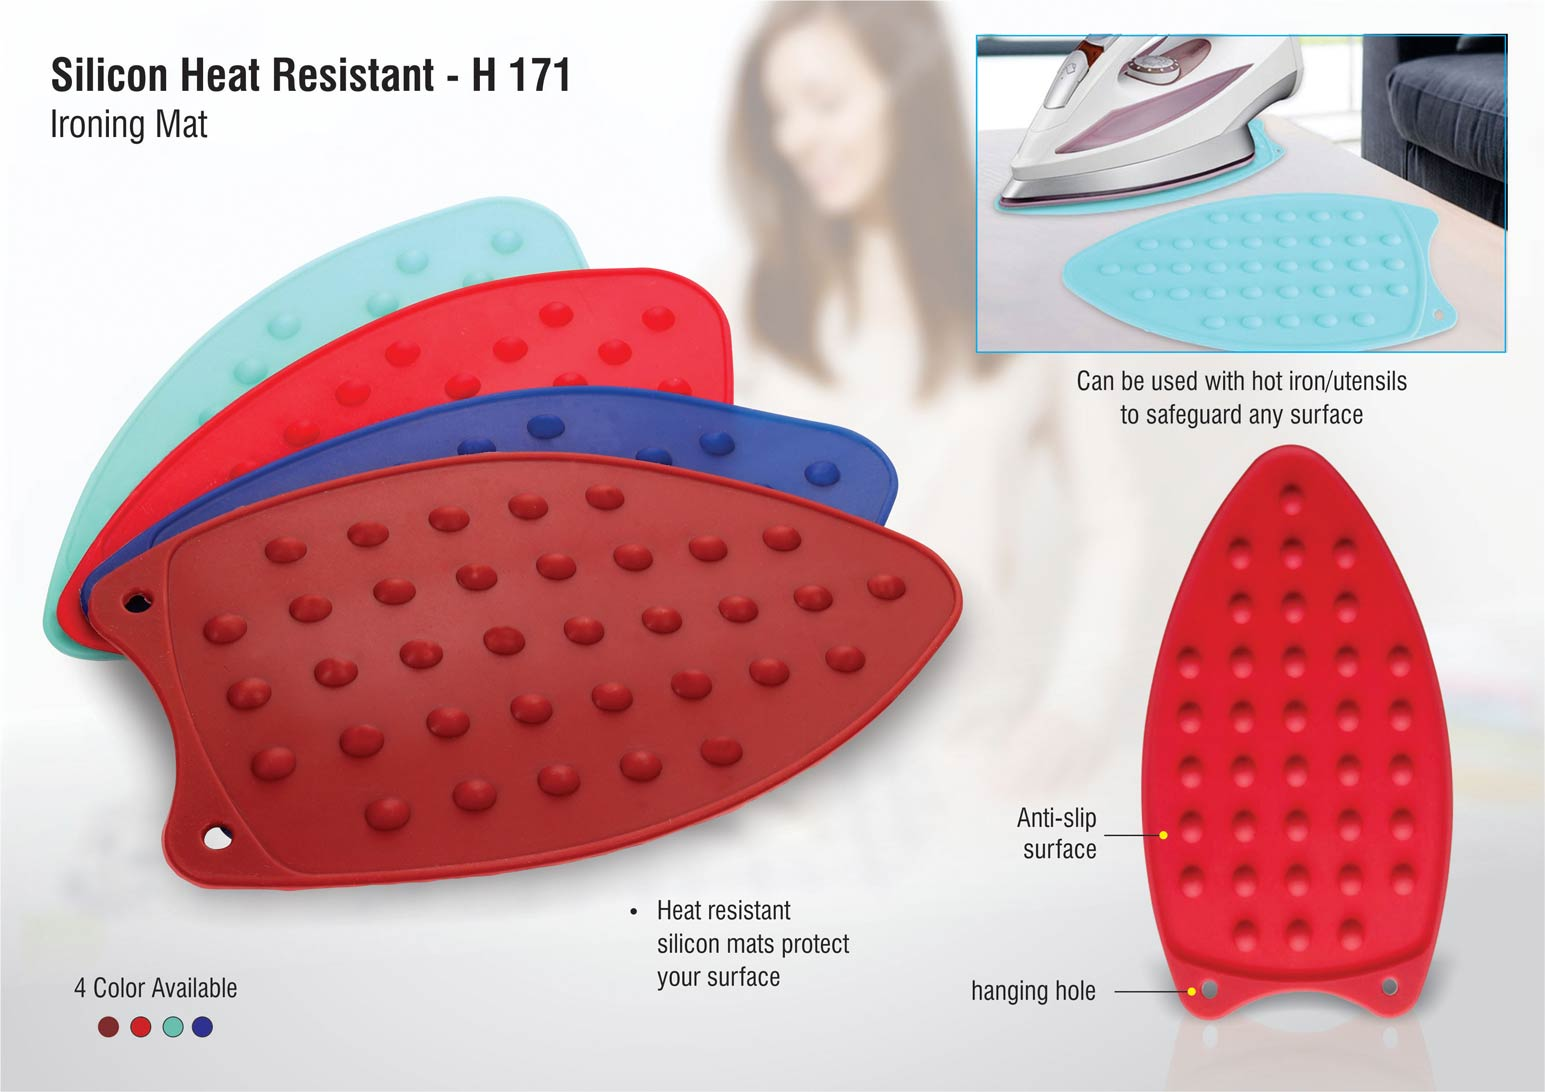 H171 - Silicon heat resistant Ironing mat